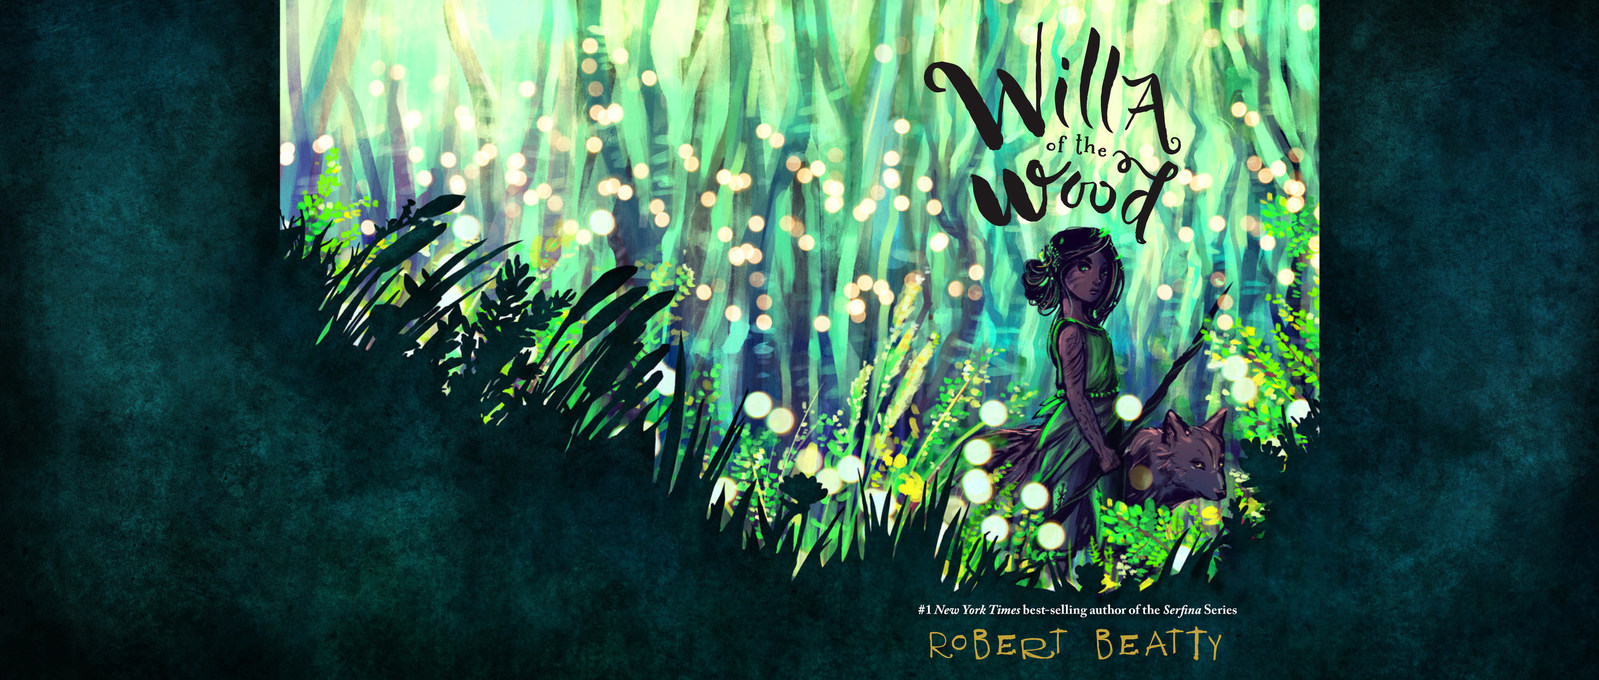 WILLA OF THE WOOD coming in July from Robert Beatty and Disney-Hyperion